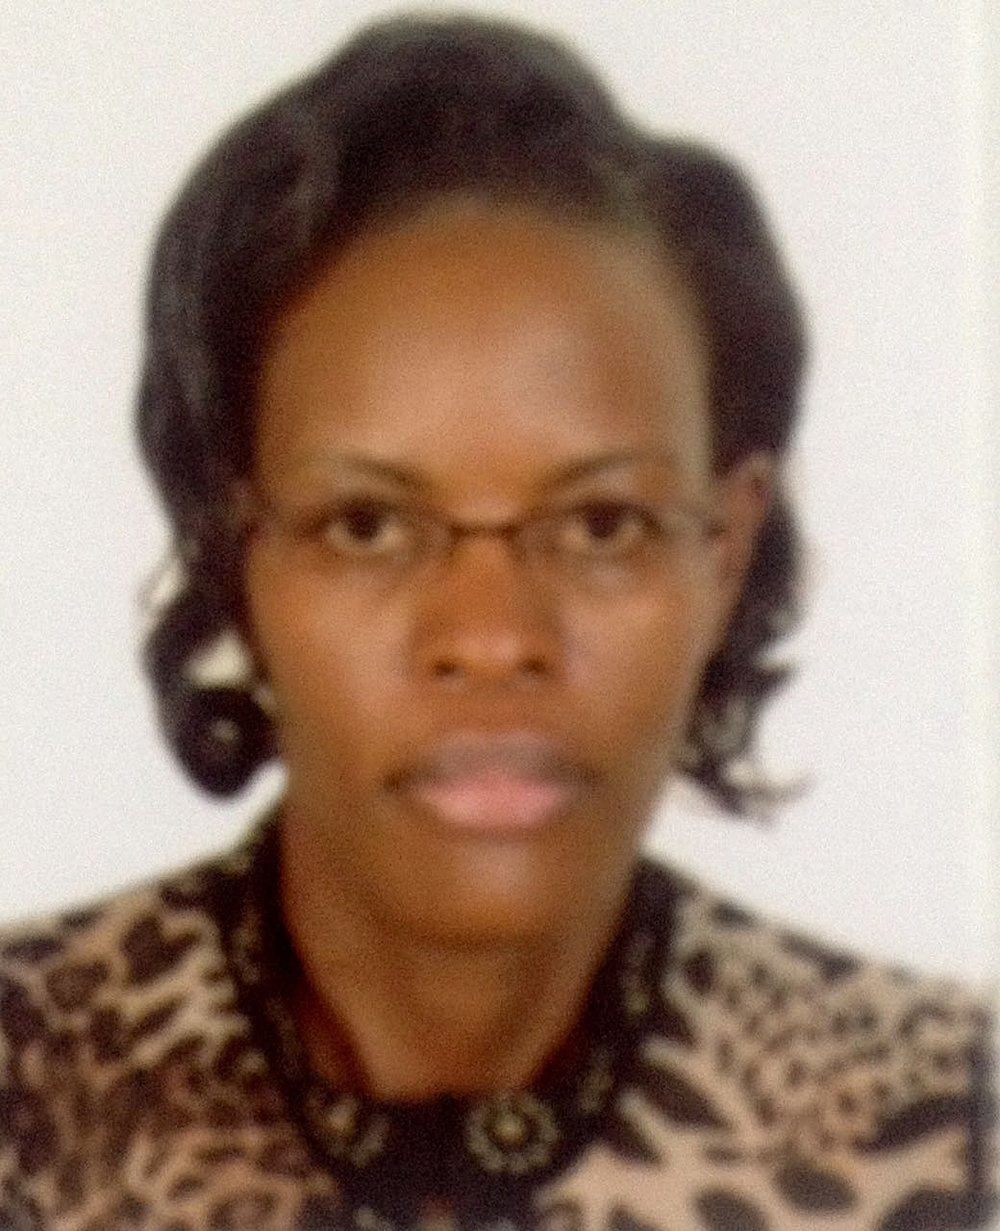 JACKLINE NYAKATO   Jackline is an accountant with Petrocity Enterprises Uganda Limited since 2004. She has wide experience in finance and audit. She is a good team member and a flexible leader with excellent communication, governance and administration skills. Prior to joining the Oil Industry Jackline worked with Kassim Lakha Abdulla and Company (Currently PKF) a reputable audit firm.  Jackline is a fellow of the Association of Chartered Certified Accountants (FCCA) and a member of the Institute of the Certified Public Accountants of Uganda. She holds a Bachelor of Science in Applied Accounting degree from Oxford Brookes University. Jackline has served on the board as a Treasurer Y-Save Multi-Purpose one of the biggest saccos in the country.